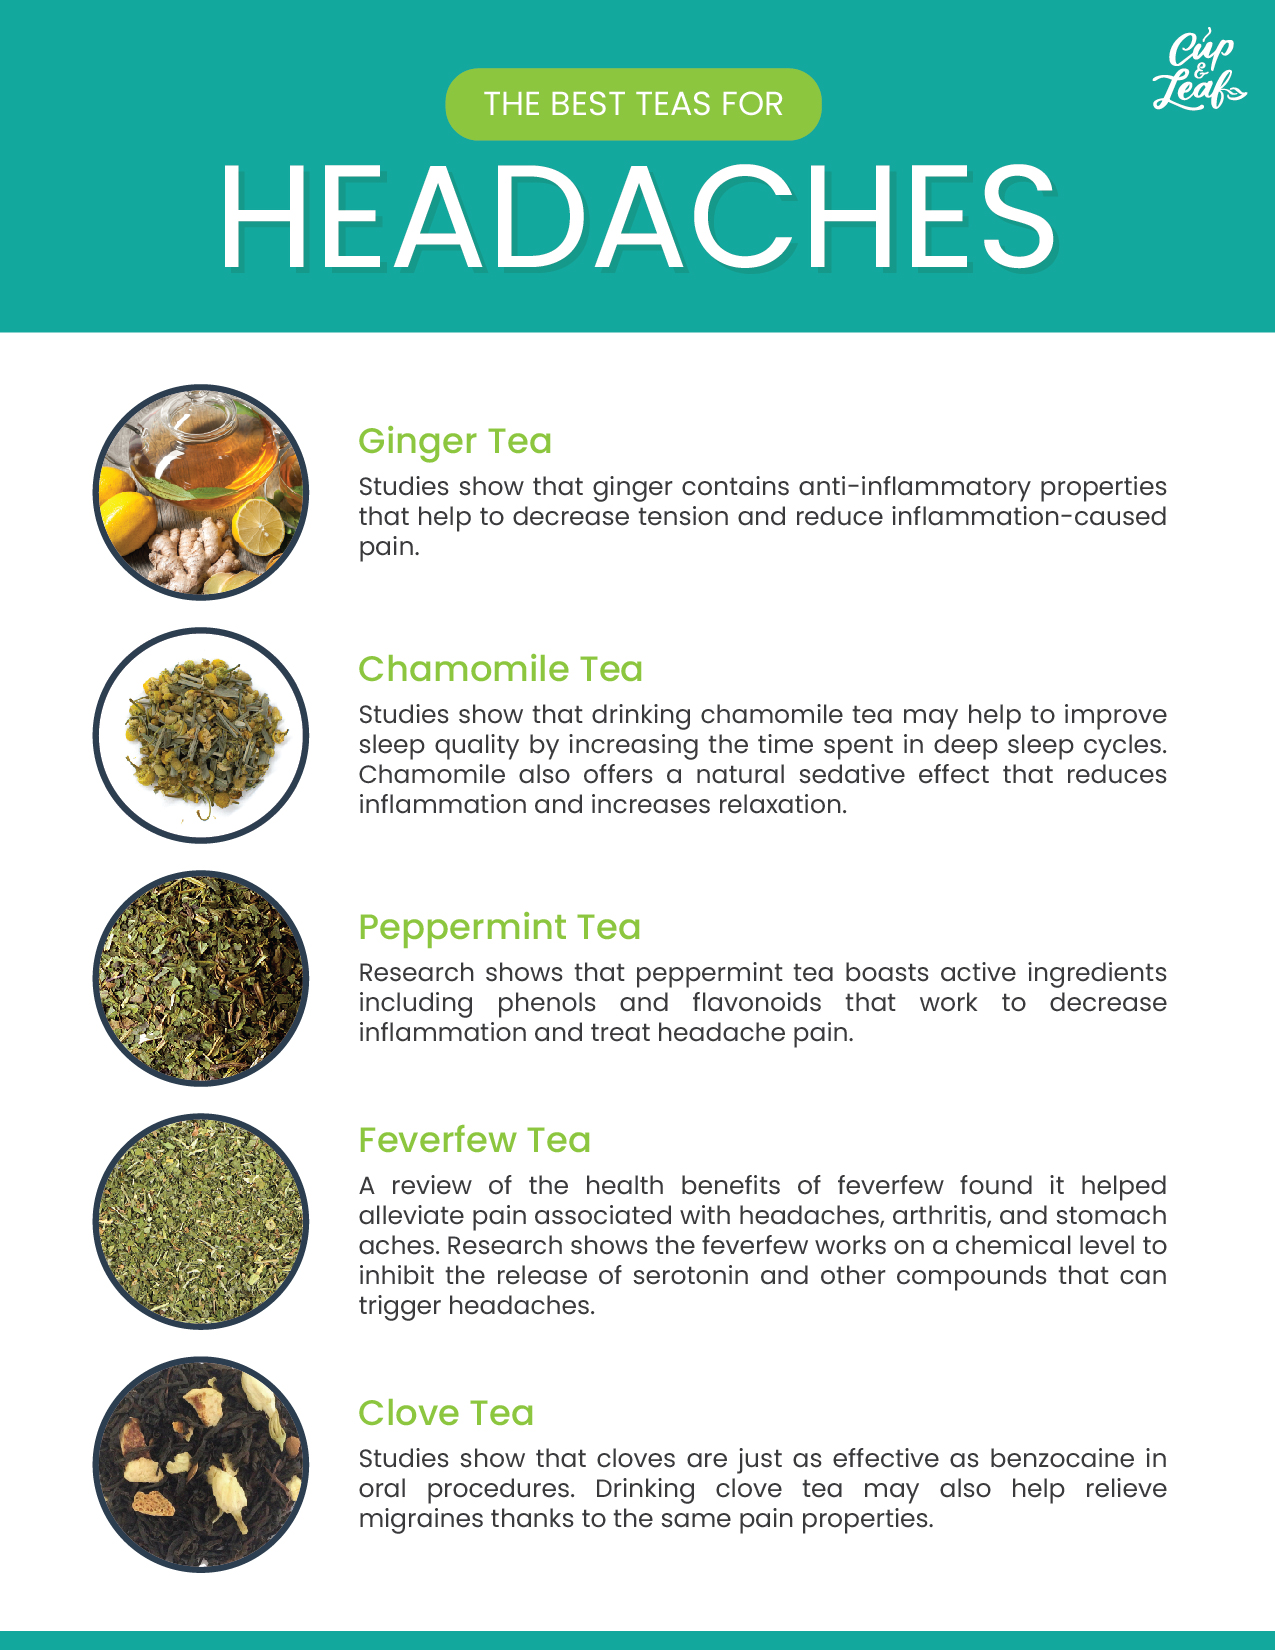 The 5 Best Teas For Headaches - Cup & Leaf